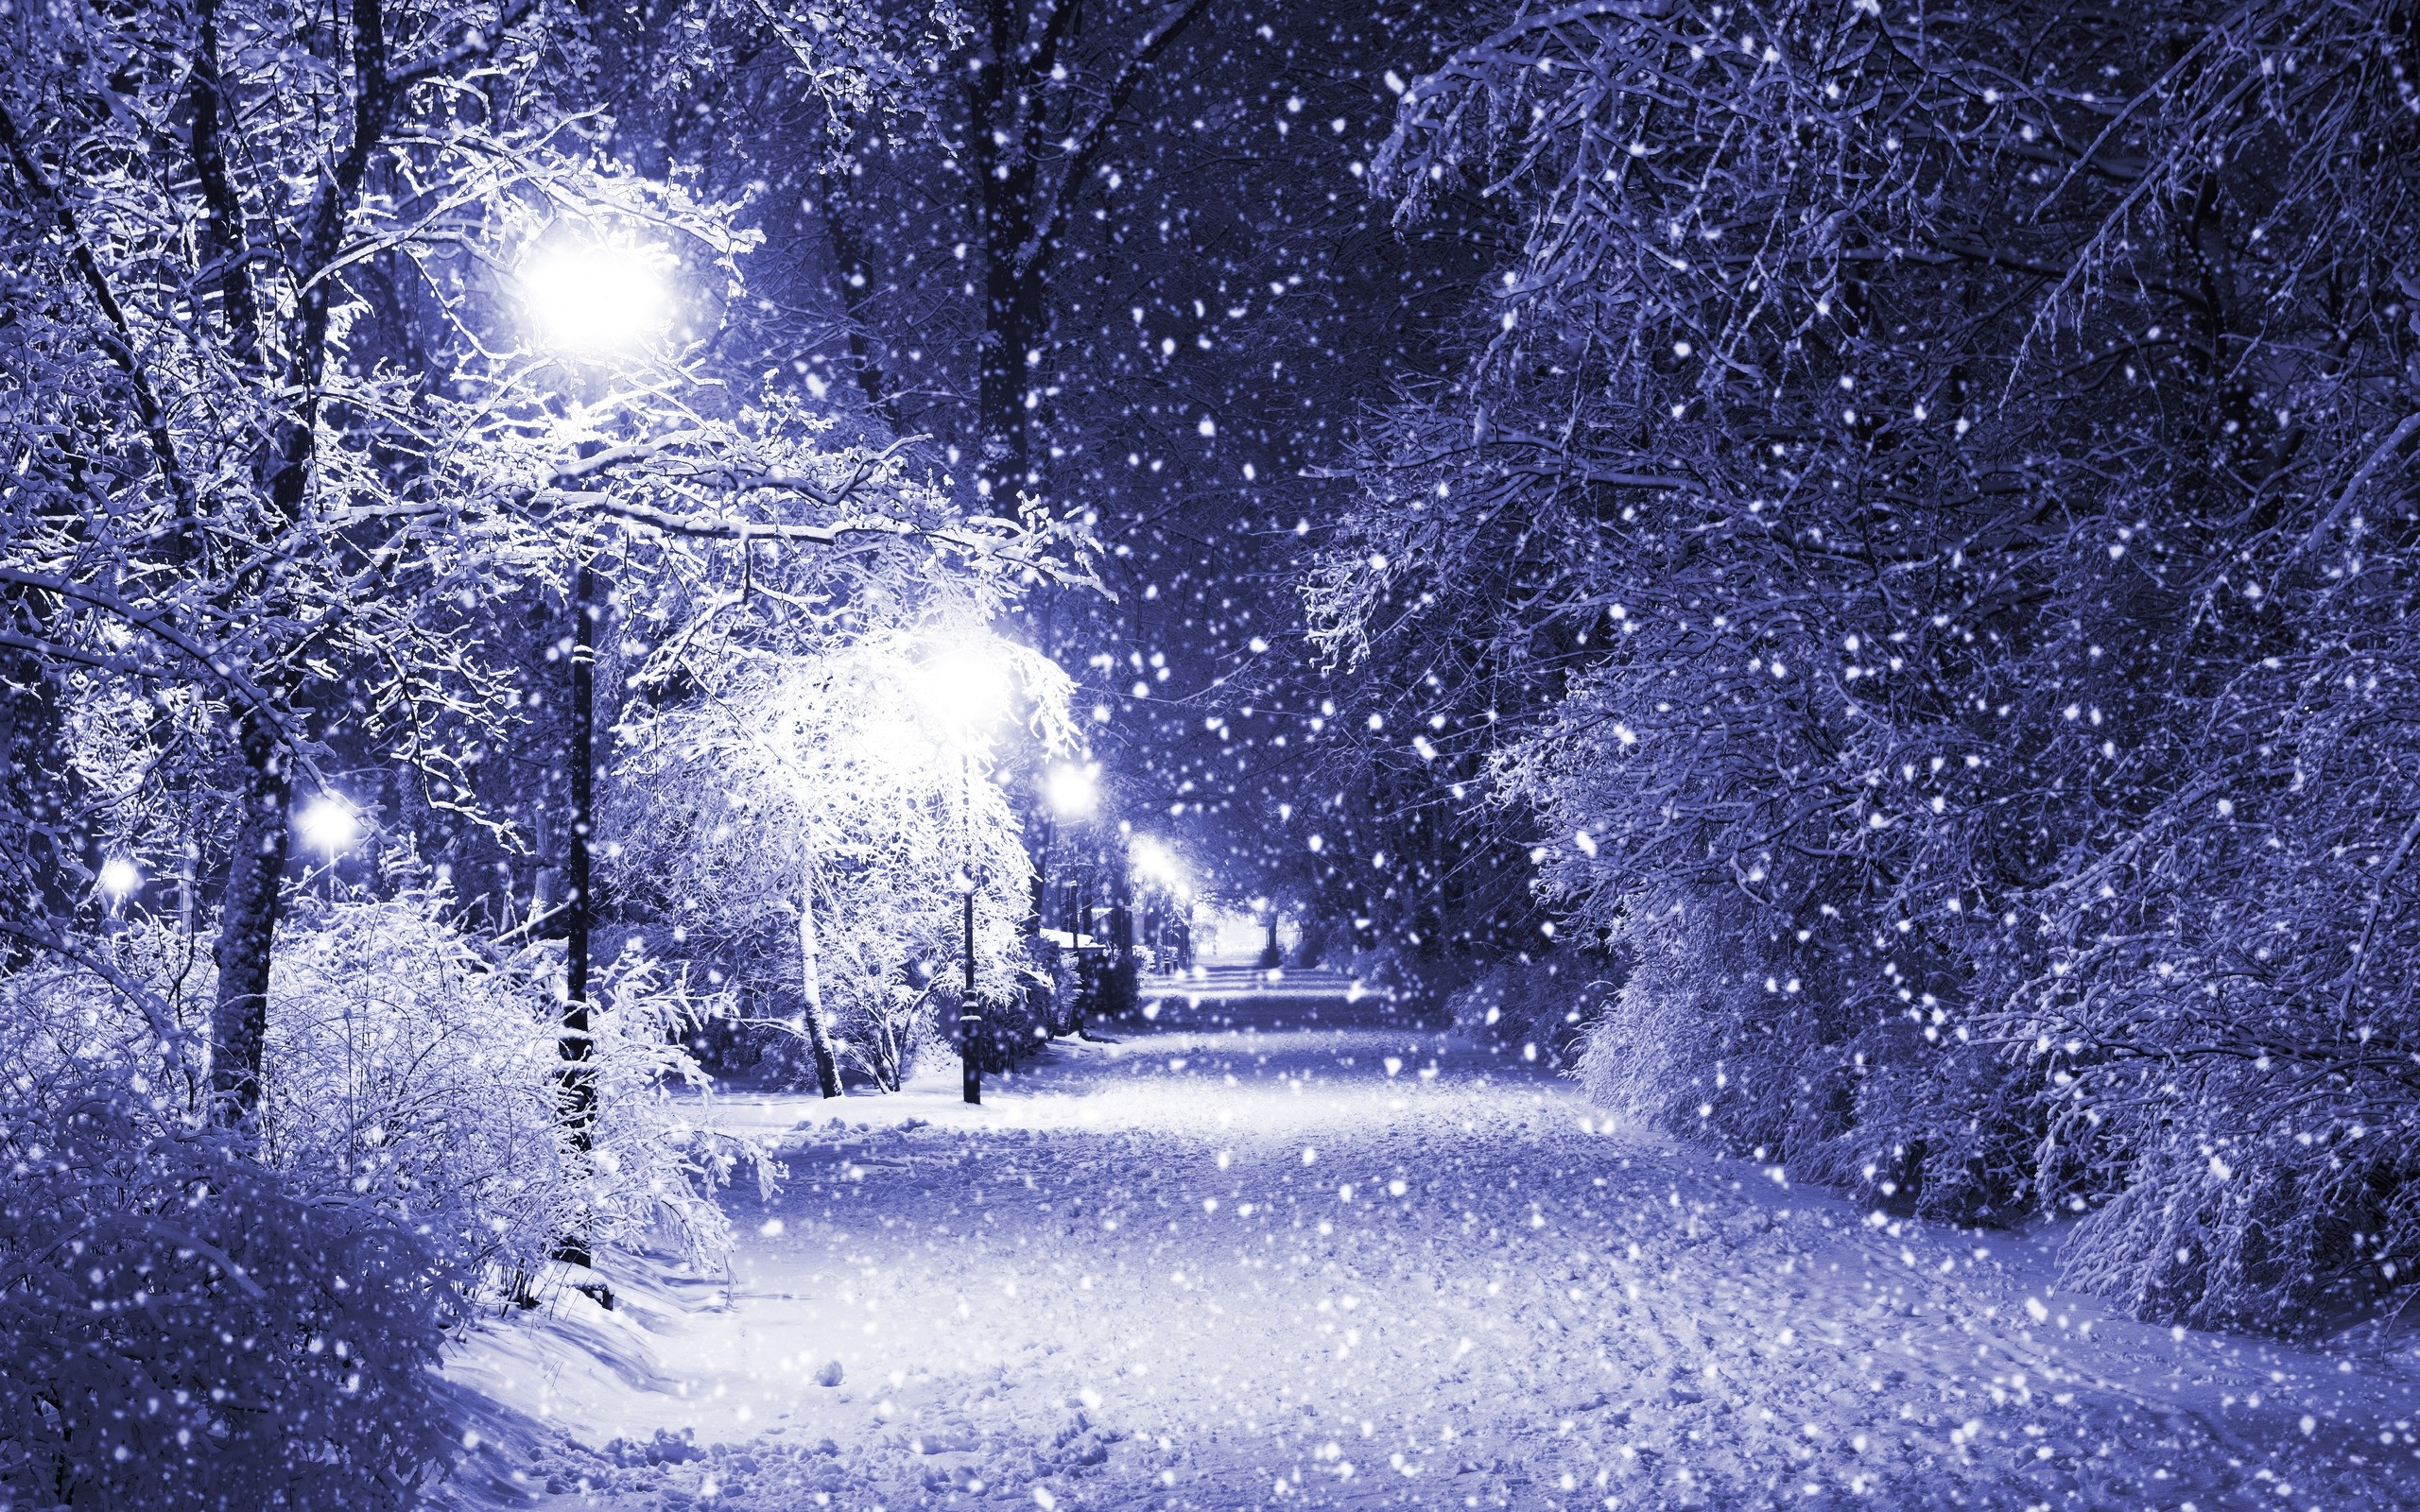 Winter Wallpaper HD Download Full HD Desktop Images Windows 2560x1600